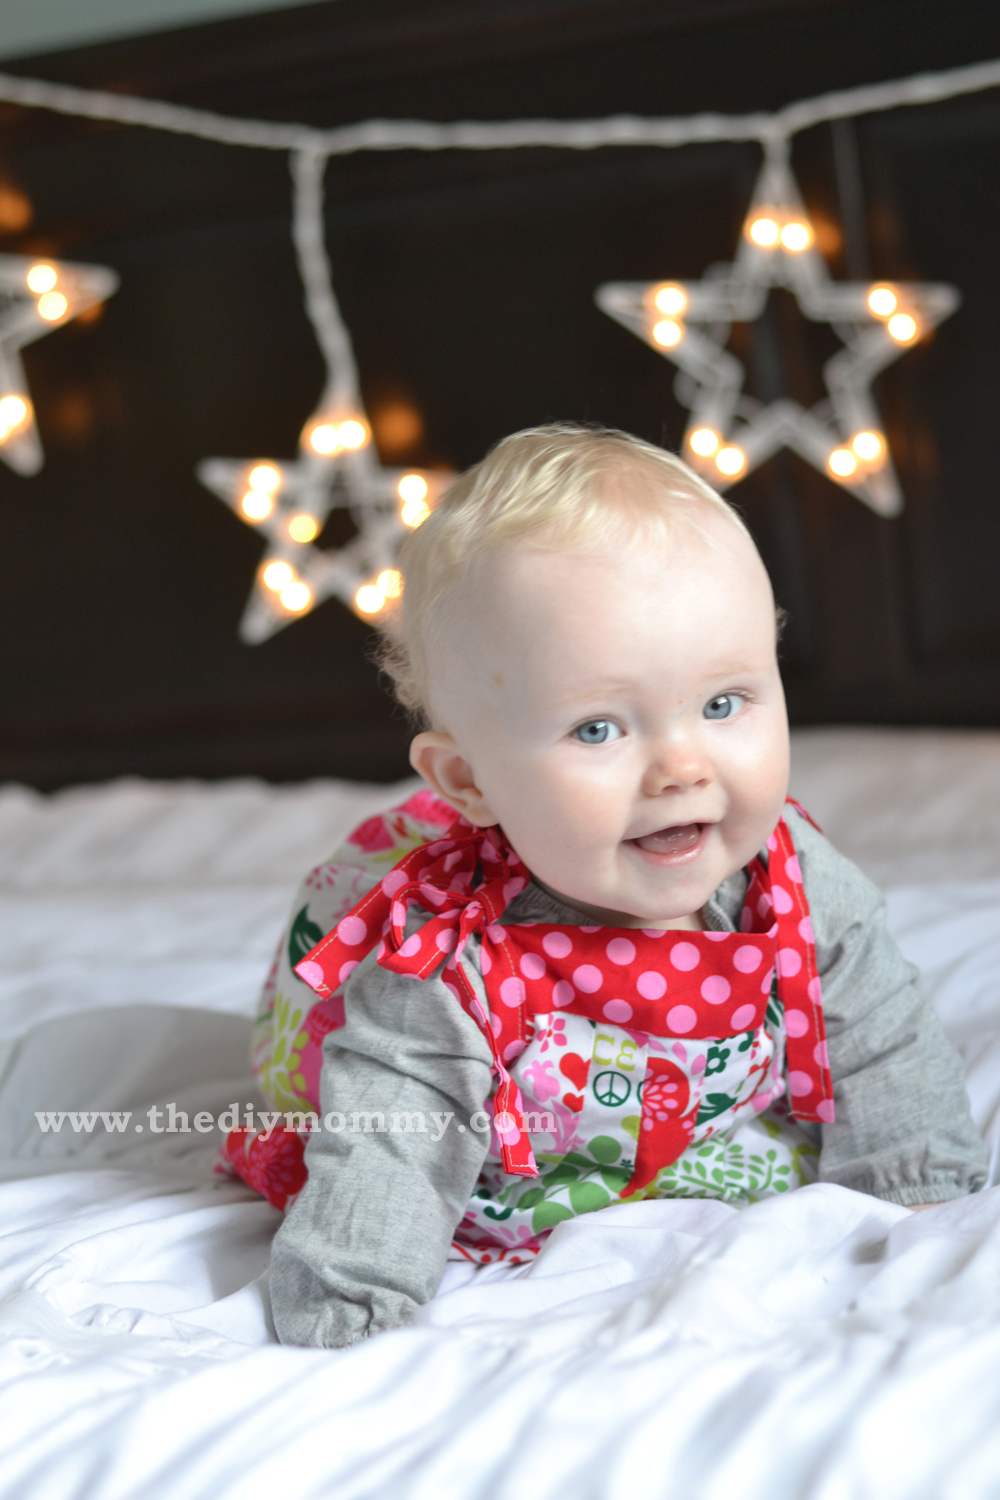 Make A DIY Christmas Photo Backdrop With Twinkle Lights By The Mommy